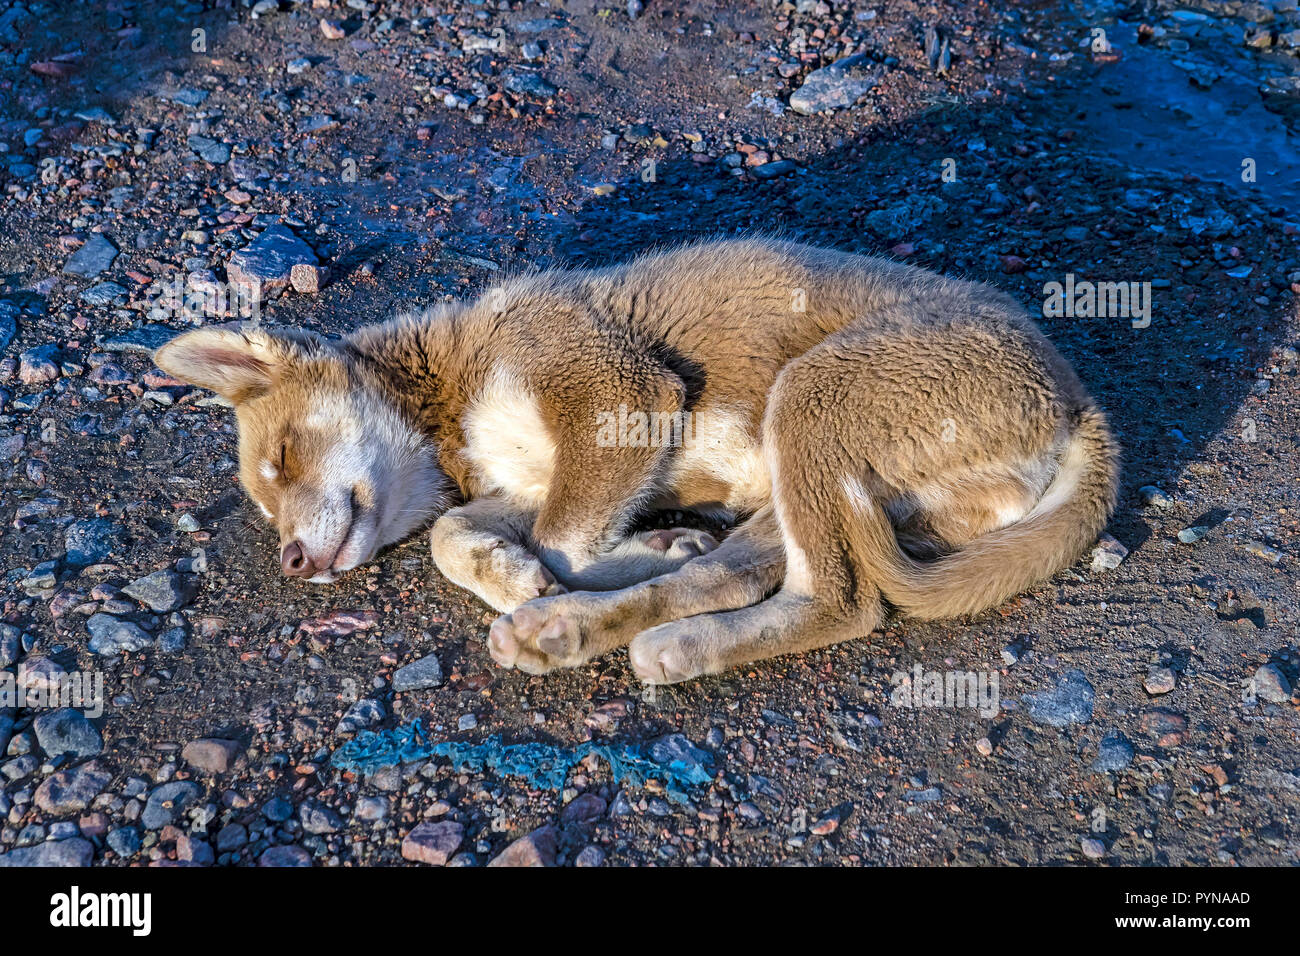 Schlafender Grönlandhund an der Küste von Grönland, Nordpolarmeer, Arktis | Sleepingt dog at coast, North polar ocean, coast at Greenland, Arctic - Stock Image